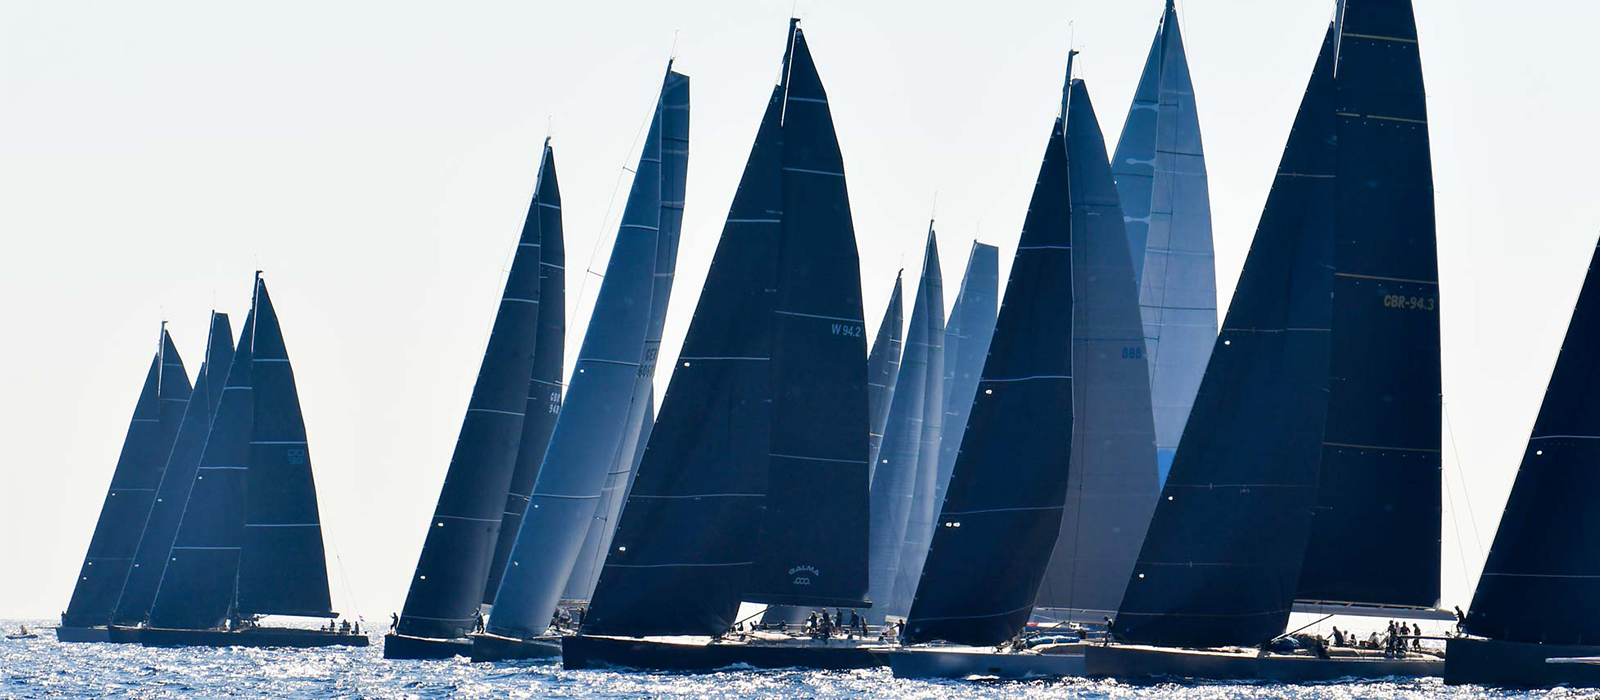 Le-Voiles-De-Saint-Tropez-Sailing-Yacht-Insurance-Luxury-Brokers.jpg